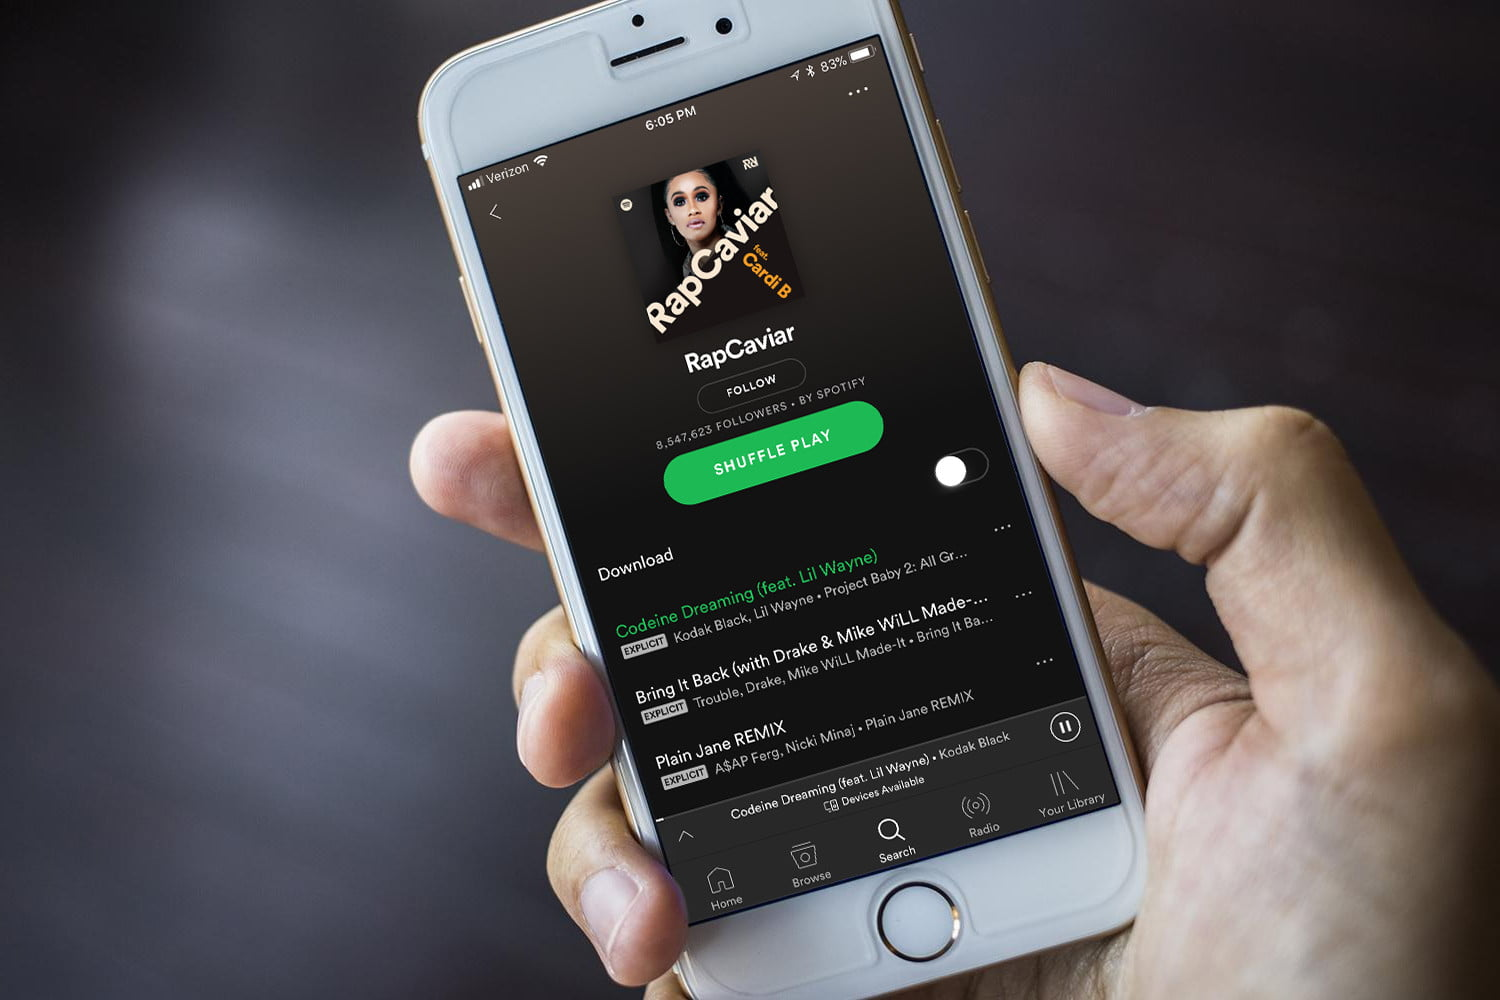 How to Make a Collaborative Playlist in Spotify | Digital Trends